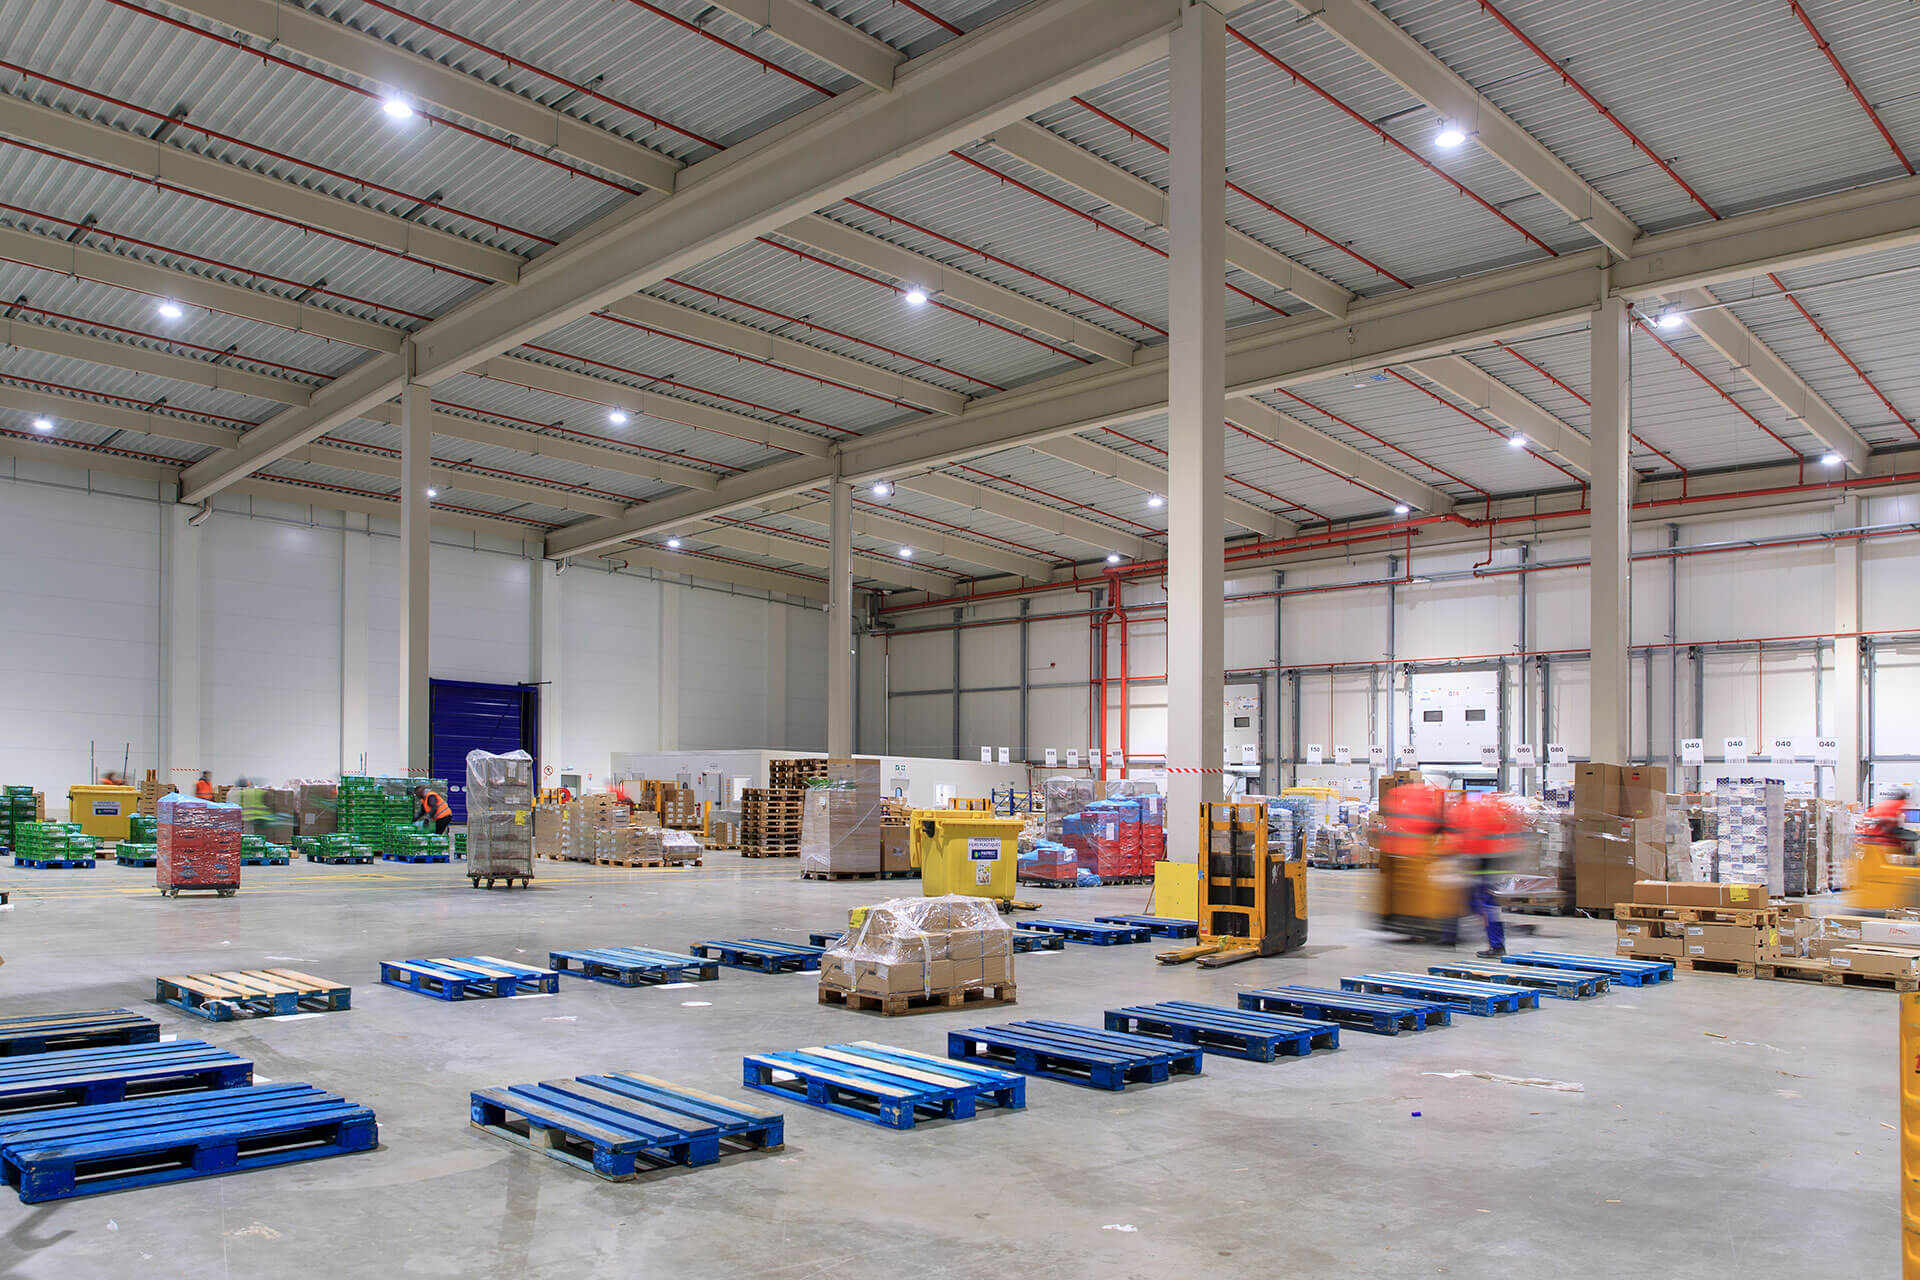 INDU BAY provides a bright white light for excellent visibility, for busy staff at Carrefour distribution centre